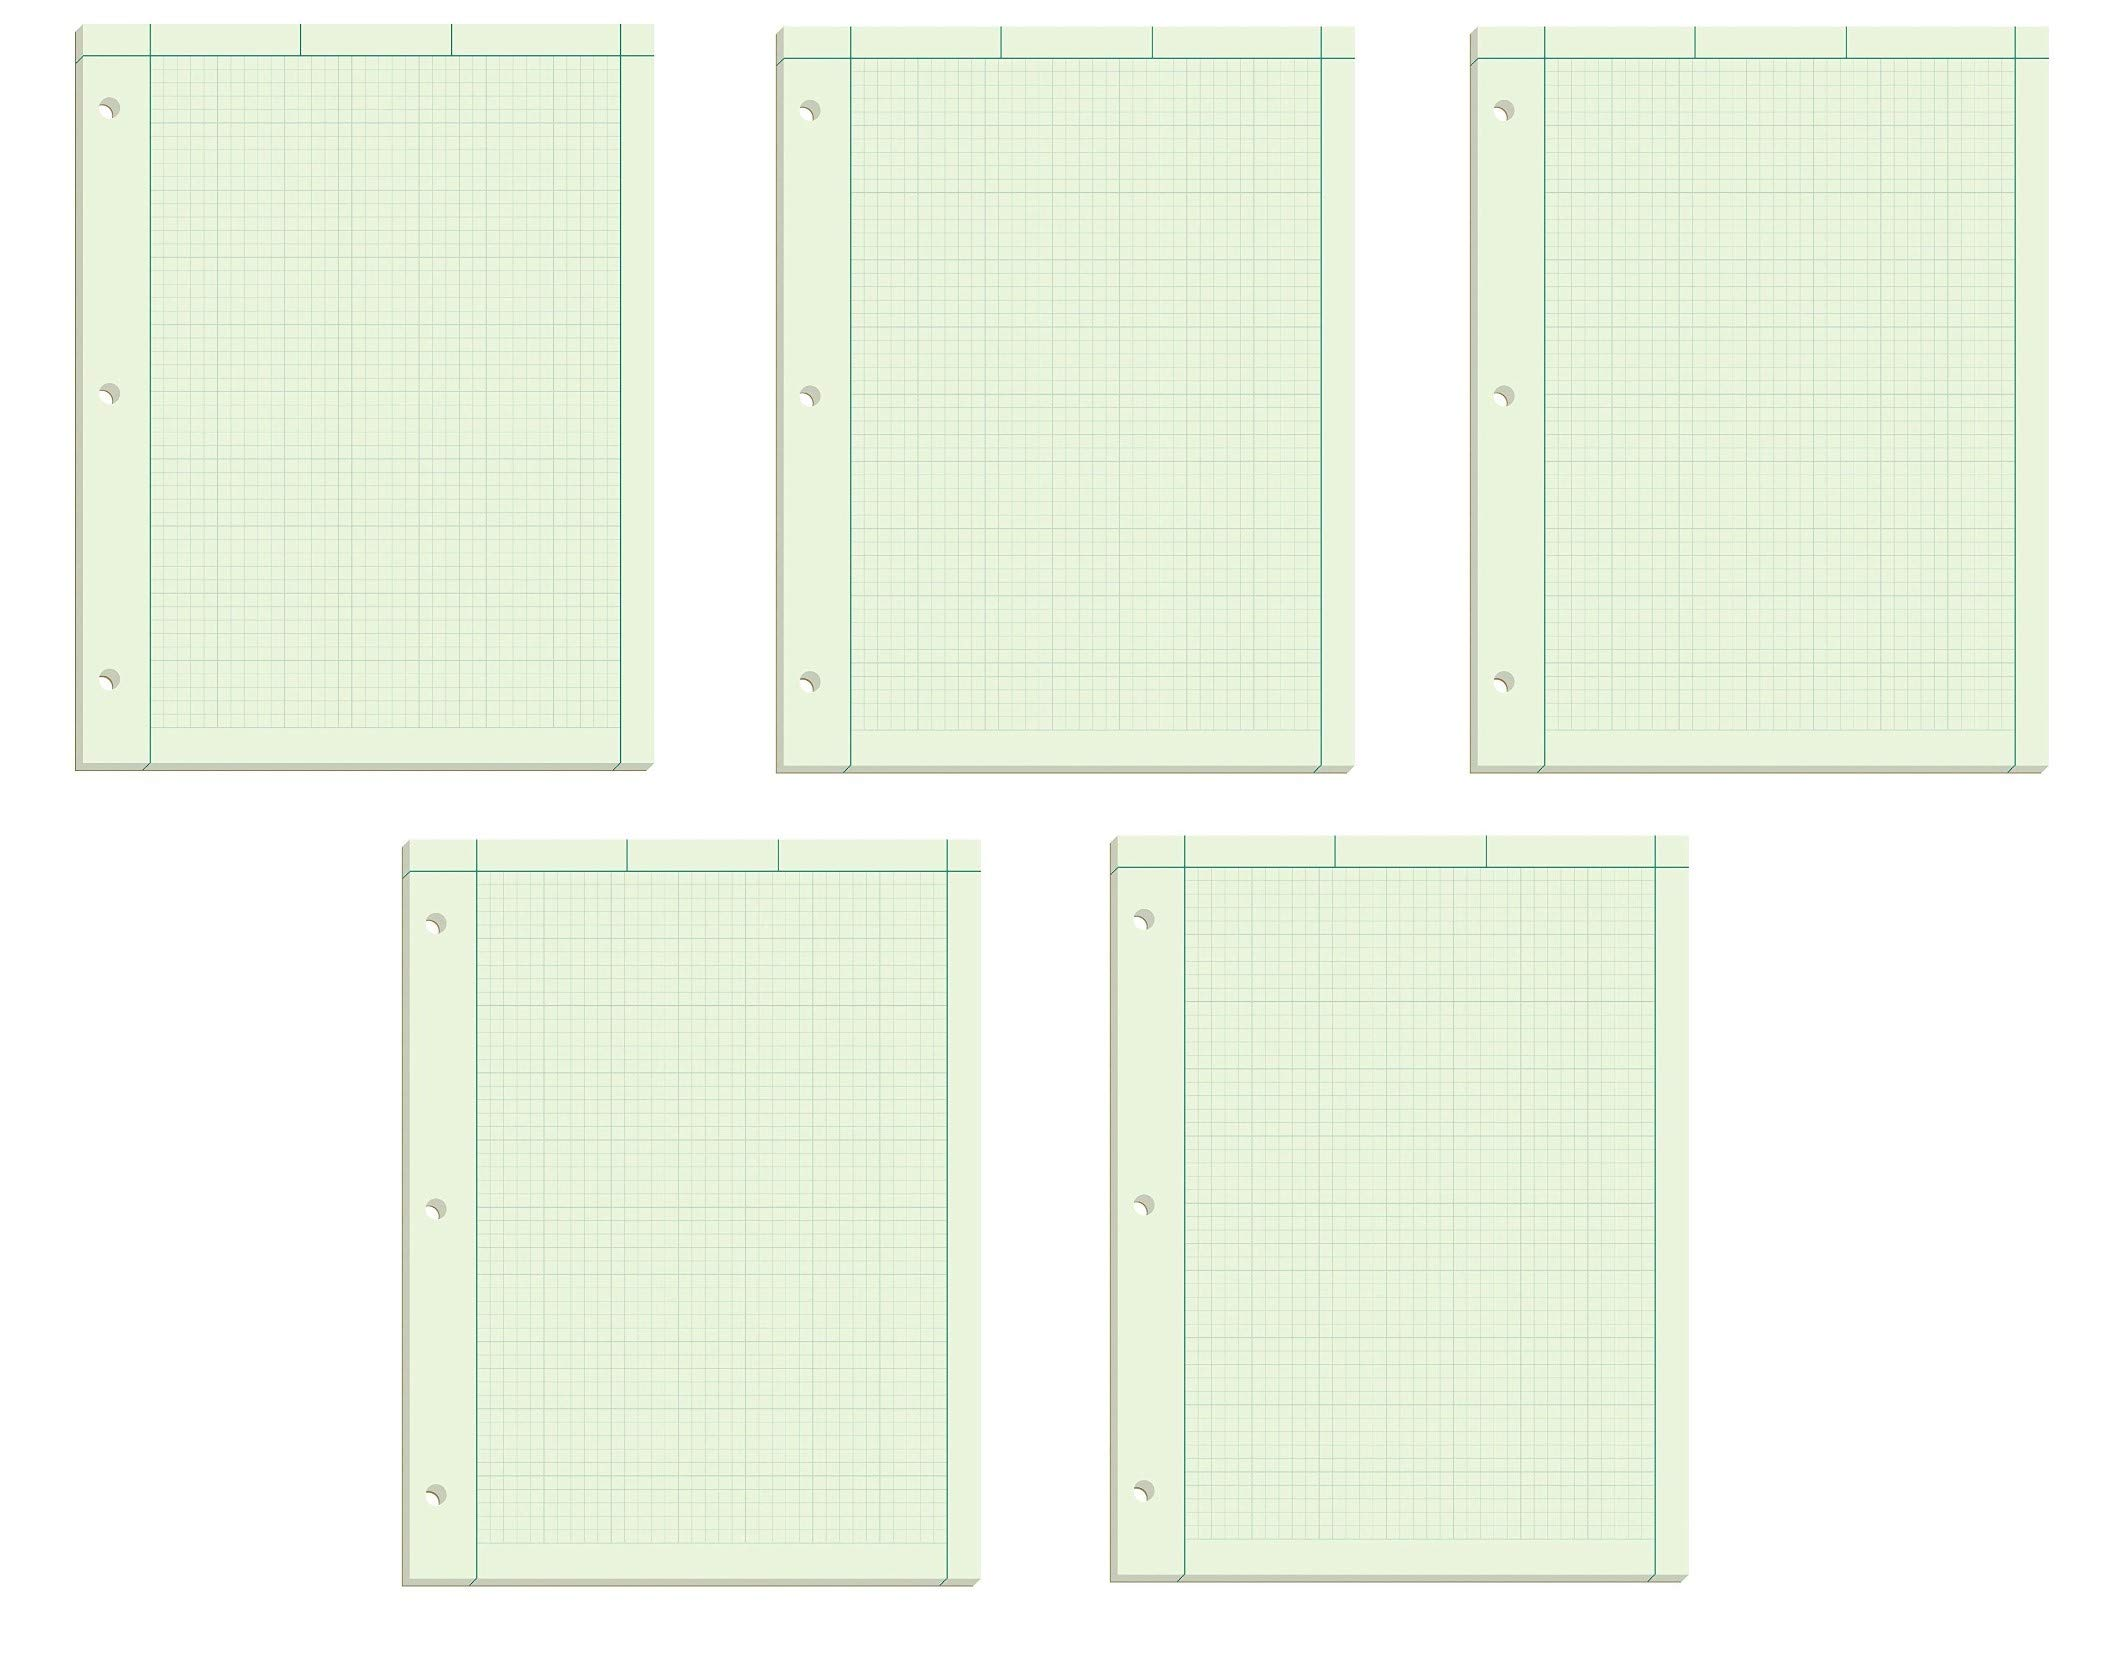 Ampad Evidence Engineering Pad, 100 Sheets, 5 Squares Per Inch, Green Tint, 11'' H x 8 1/2 W, Pack Of 5, 500 Sheets Total (22-142) by Ampad